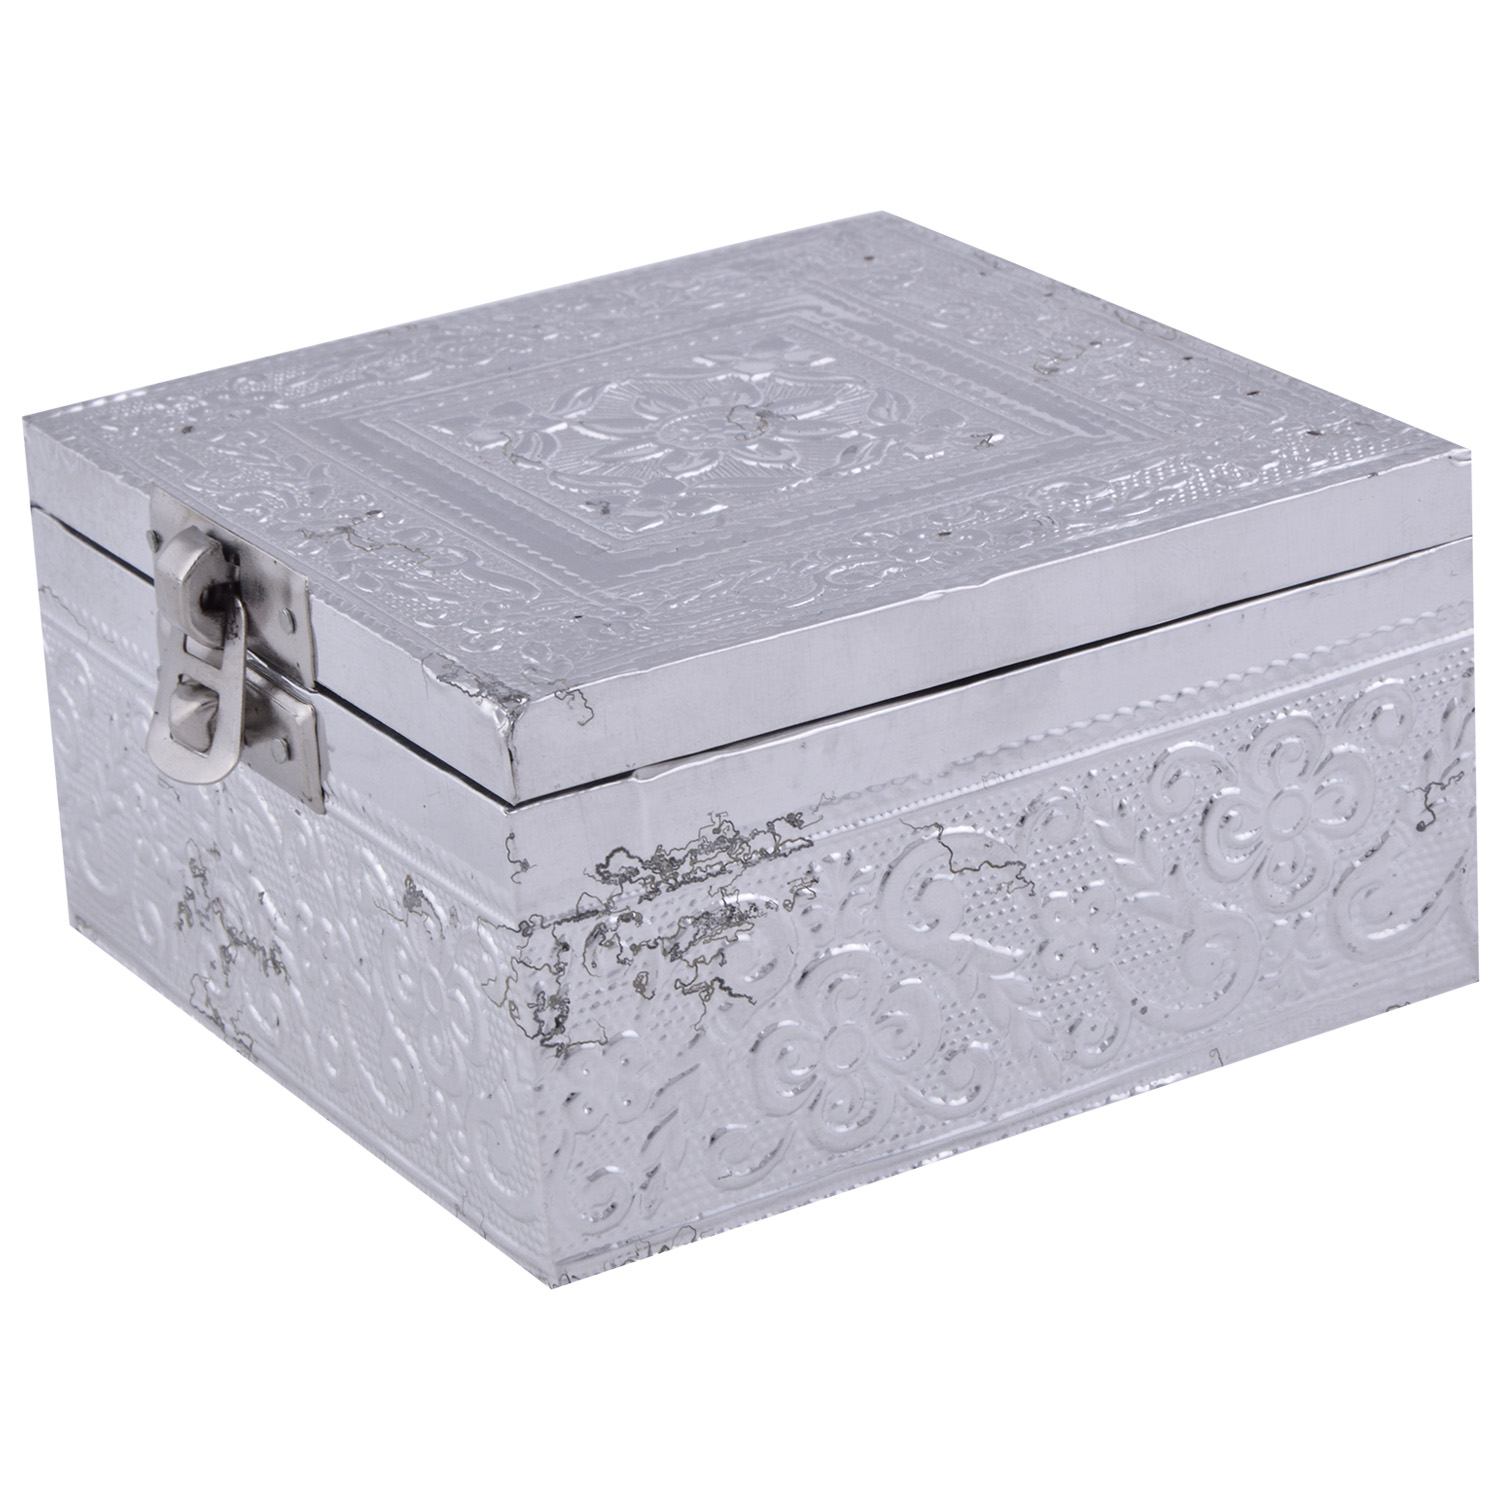 JK Handicraft 4x4 Silver Dry Fruit/ Multipurpose Box  (10cmX10cmX6cm)